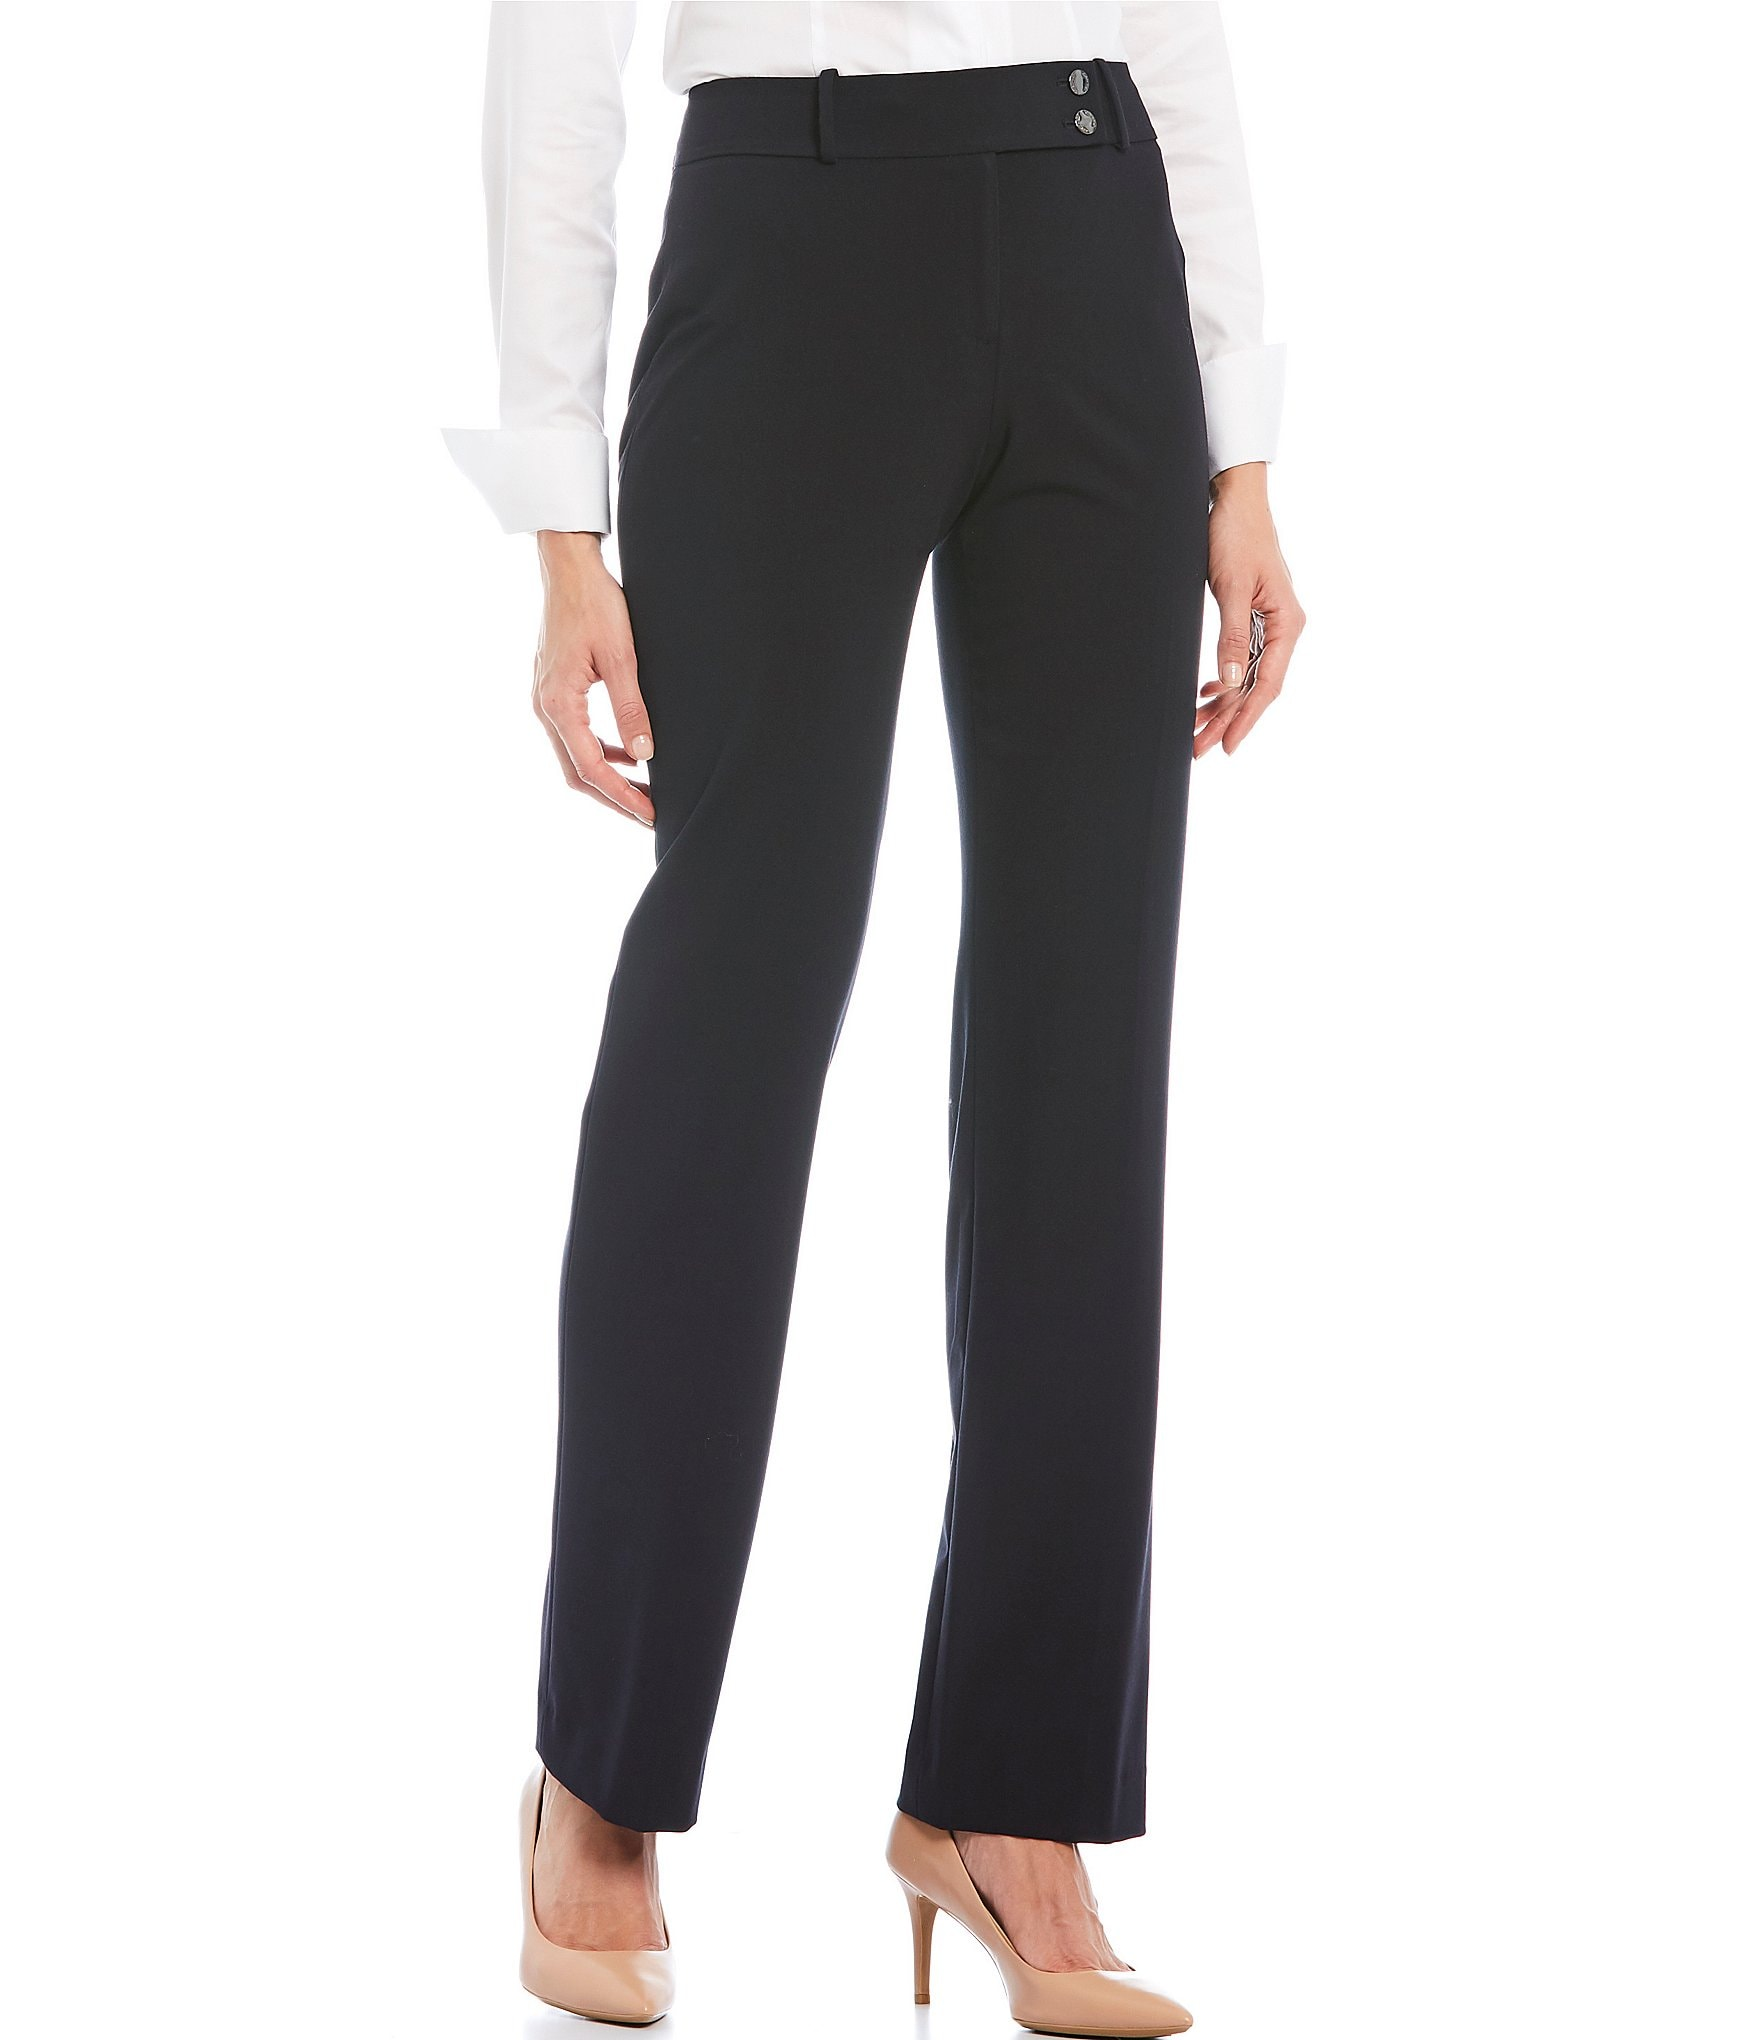 New Womenu0026#39;s Dress Pants - $25 Off $100 Two Days Only!